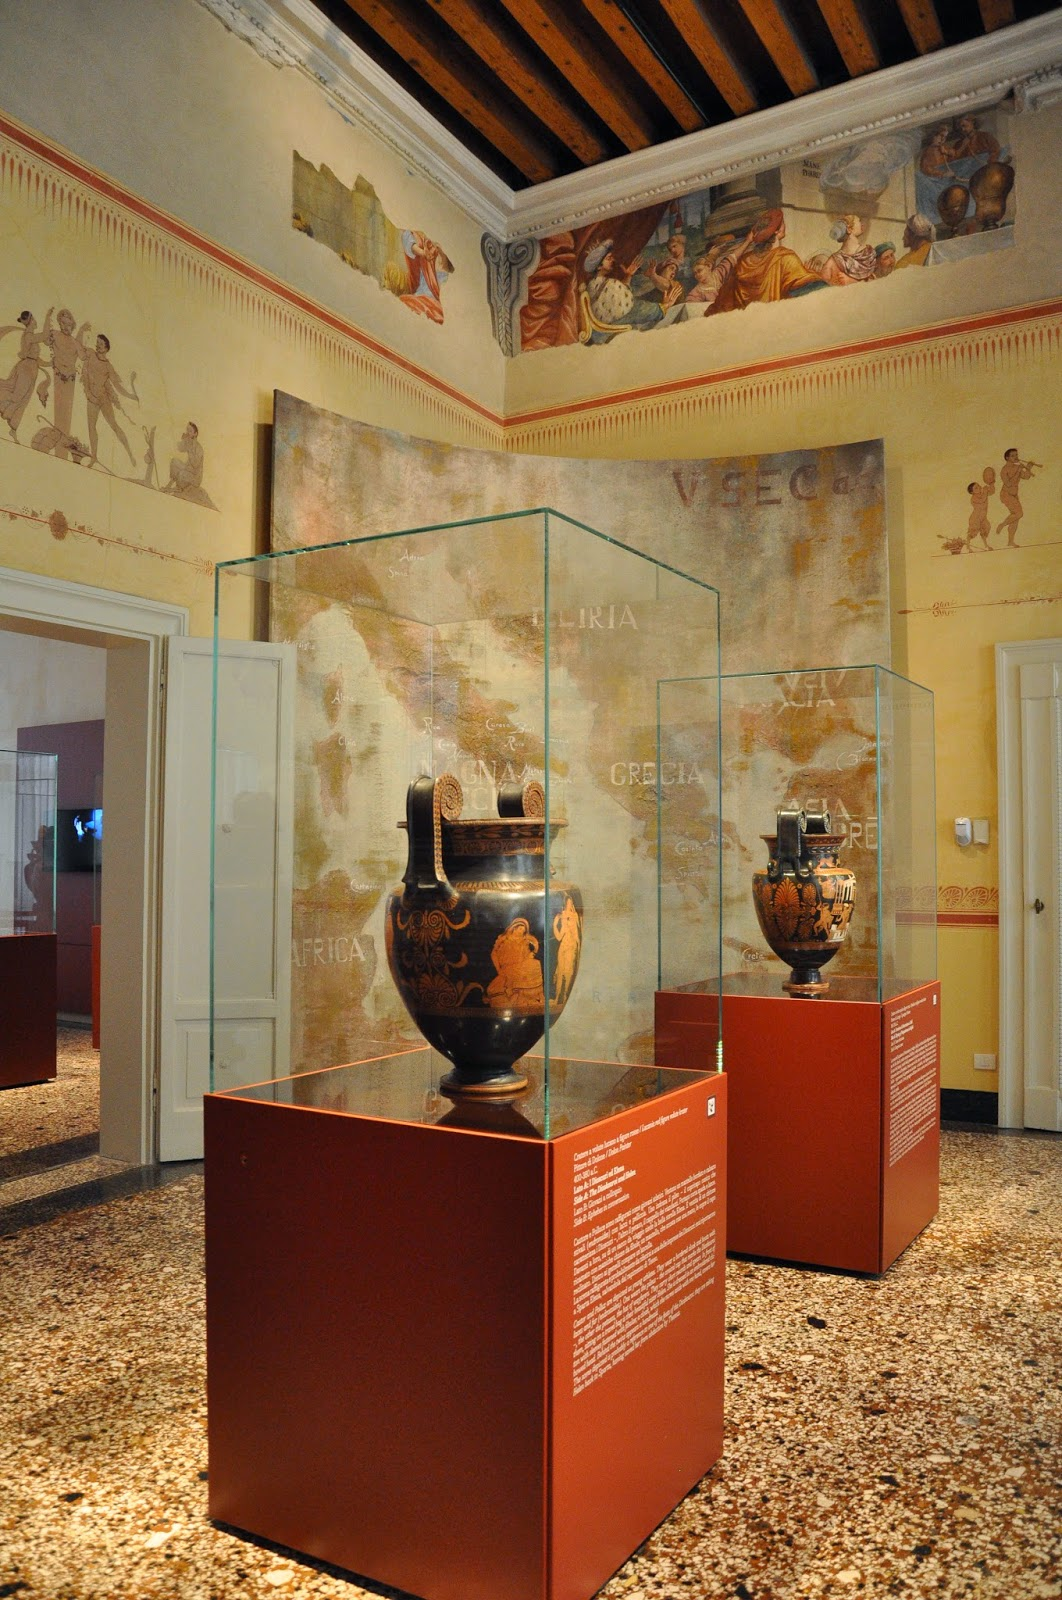 The Ancient Greece section of Gallerie D'Italia in Palazzo Leoni Montanari, Vicenza, Italy